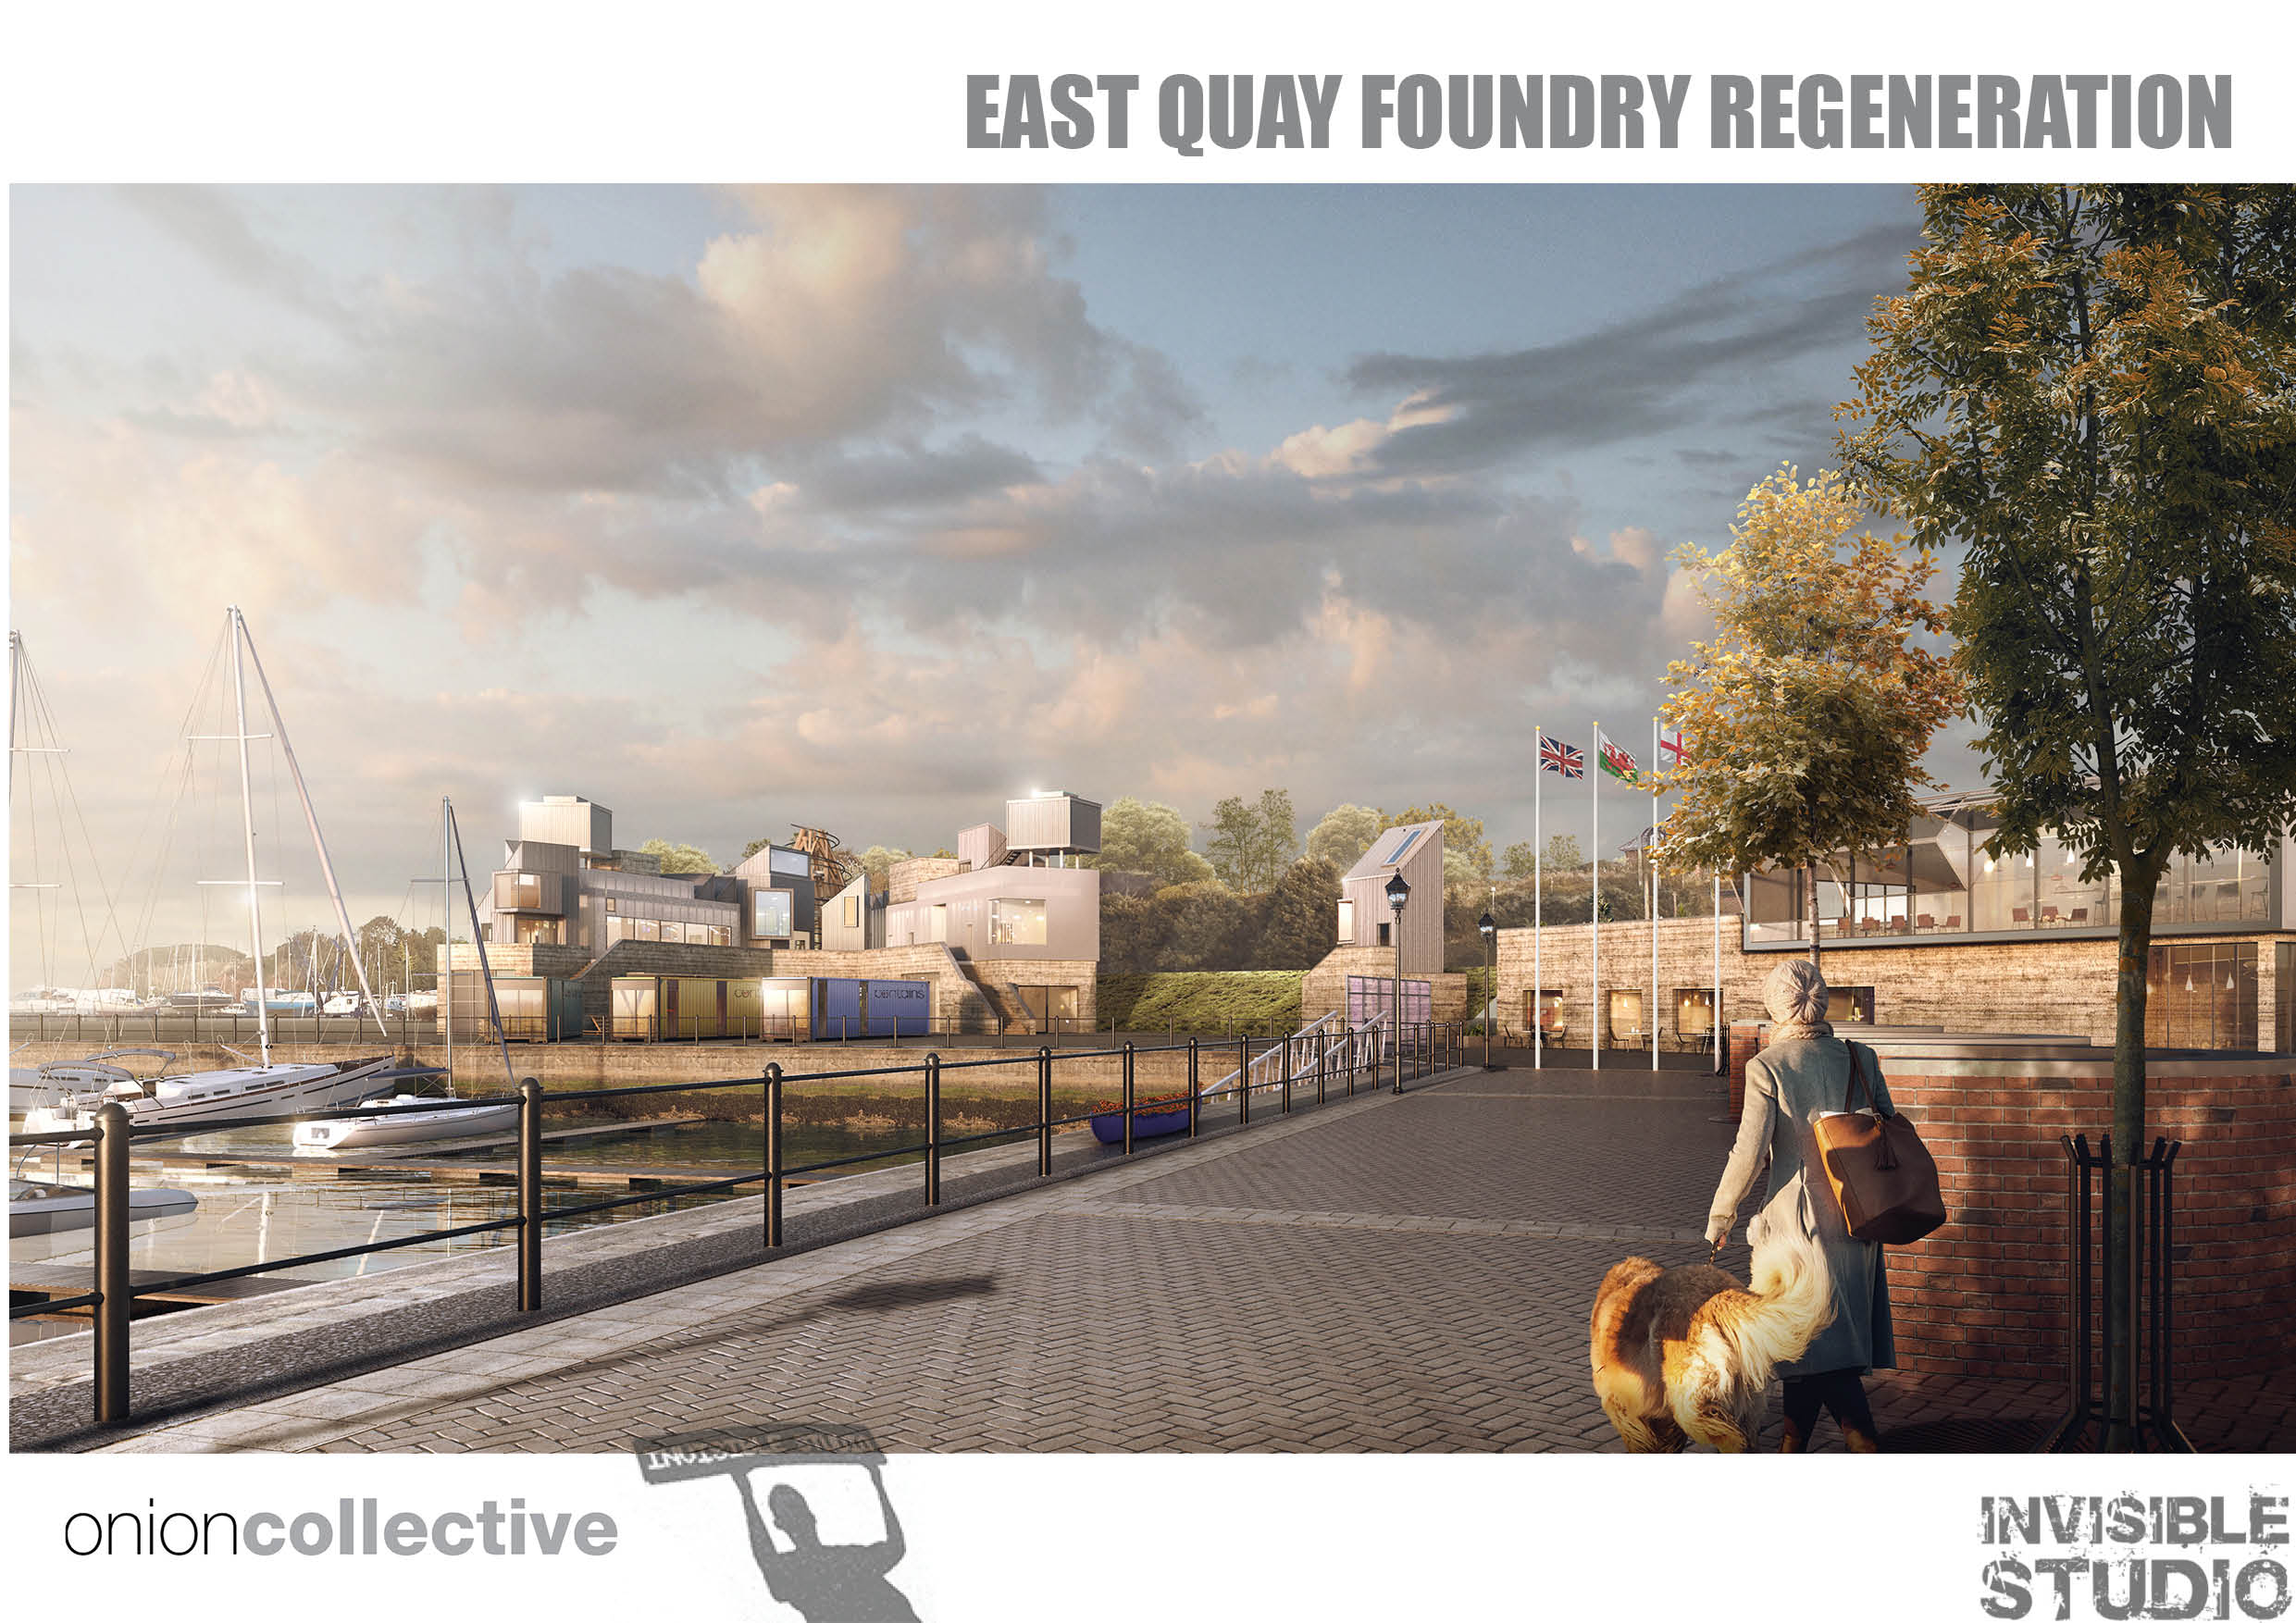 East Quay Foundry